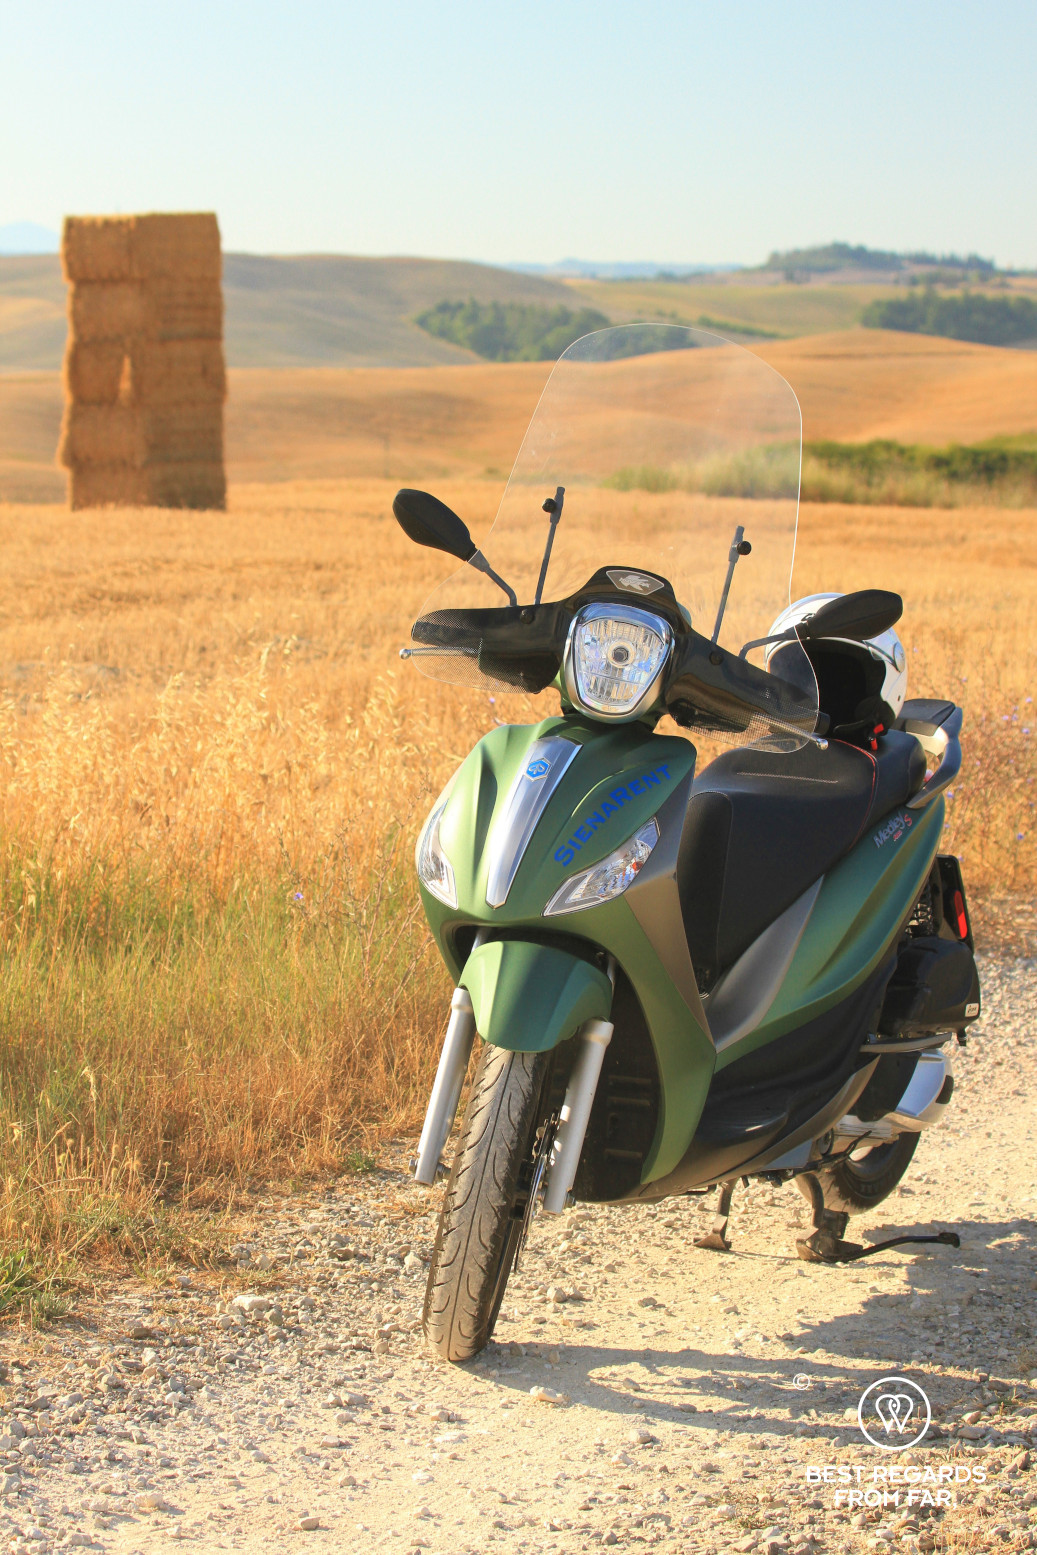 Green Vespa parked in a barley field in Tuscany, Italy